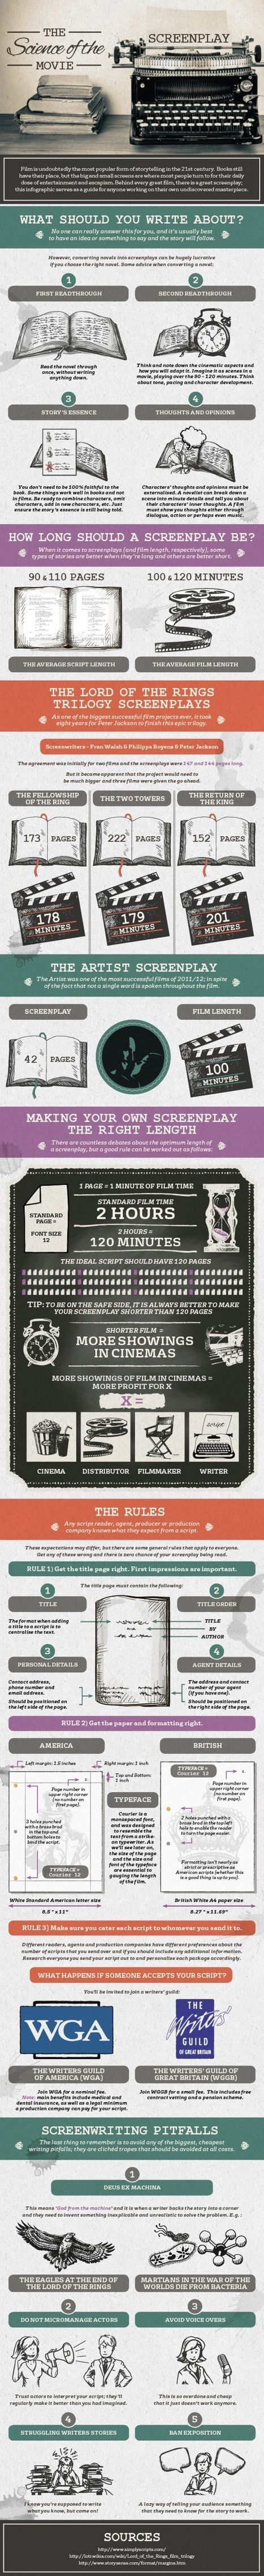 Screenwriting Essentials in Infographic Form